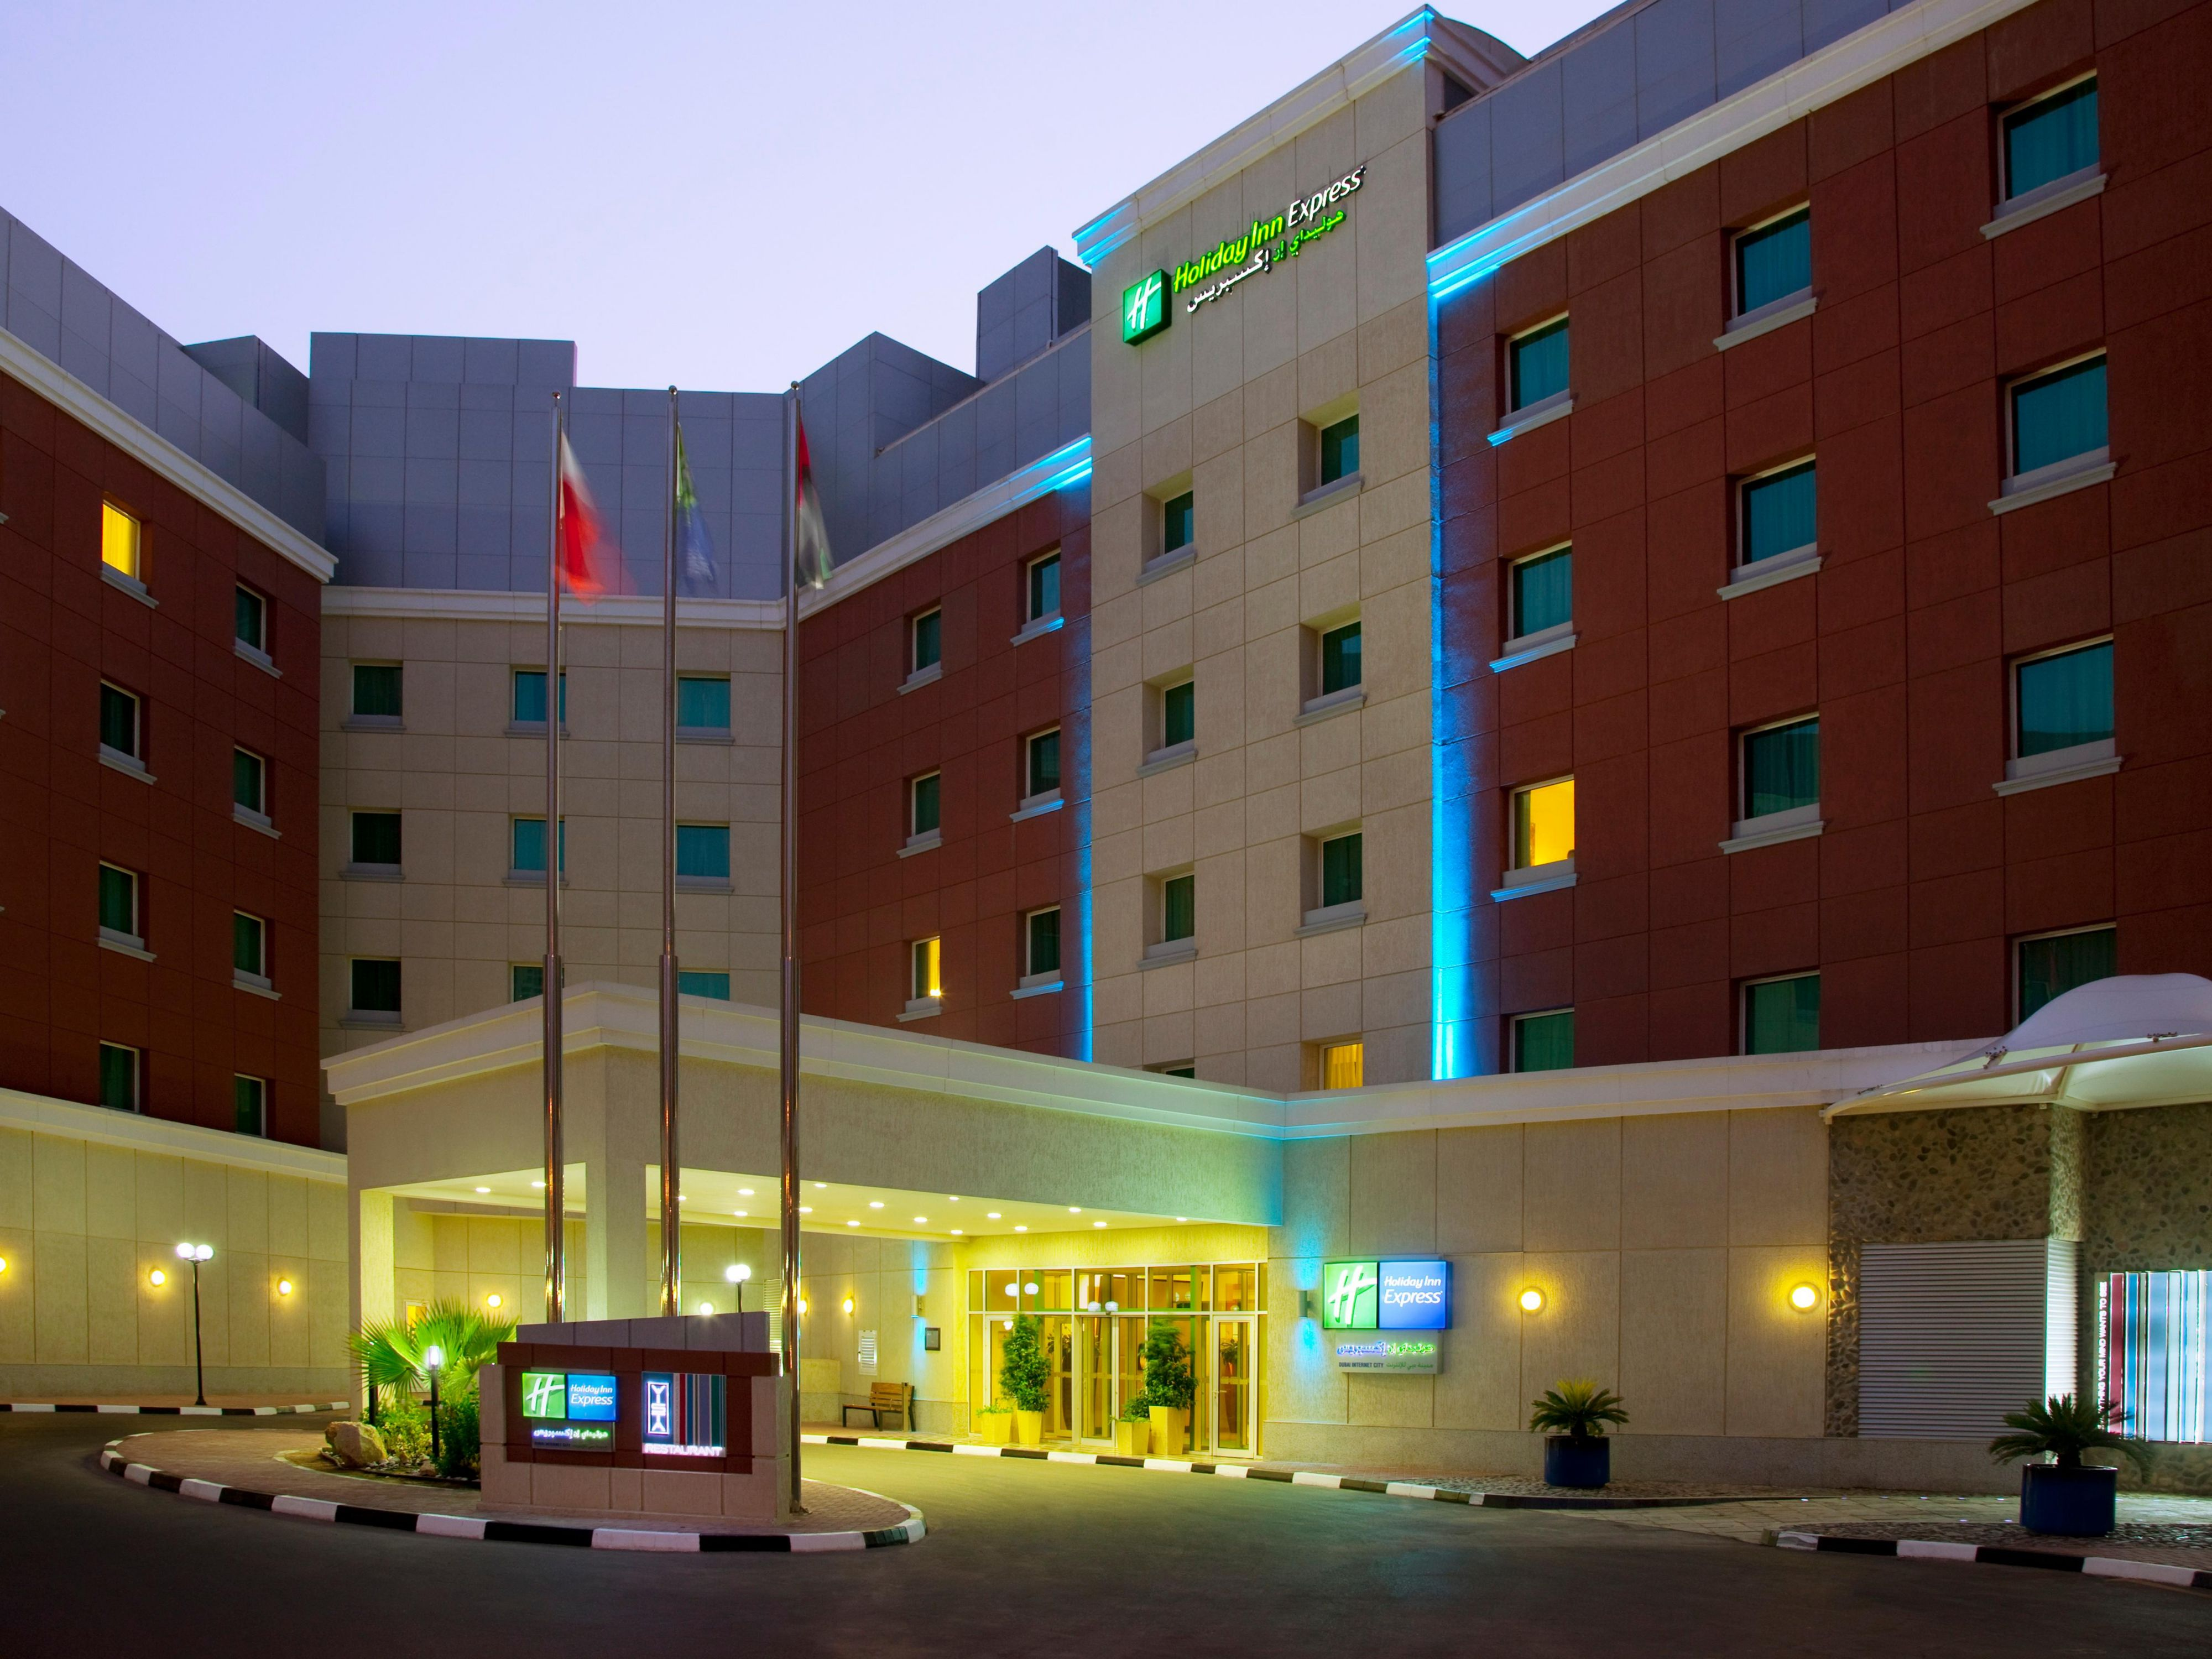 Welcome to the Holiday Inn Express Dubai Internet City